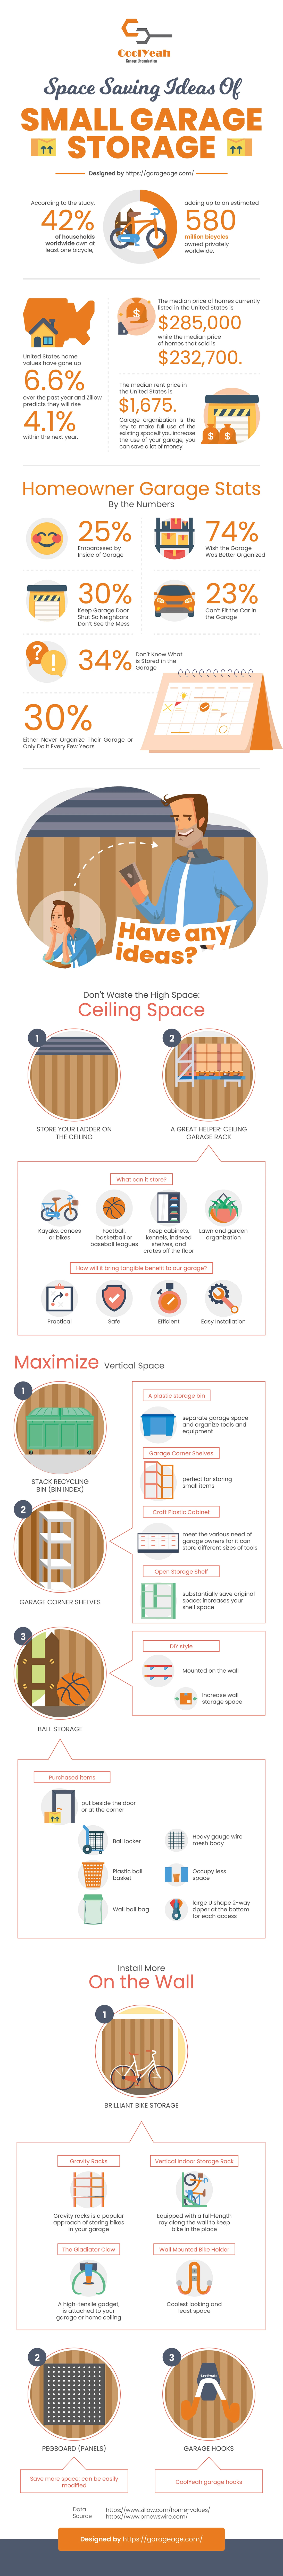 Amazing Ideas to Maximize and Organize Your Garage, At Last! - Infographic